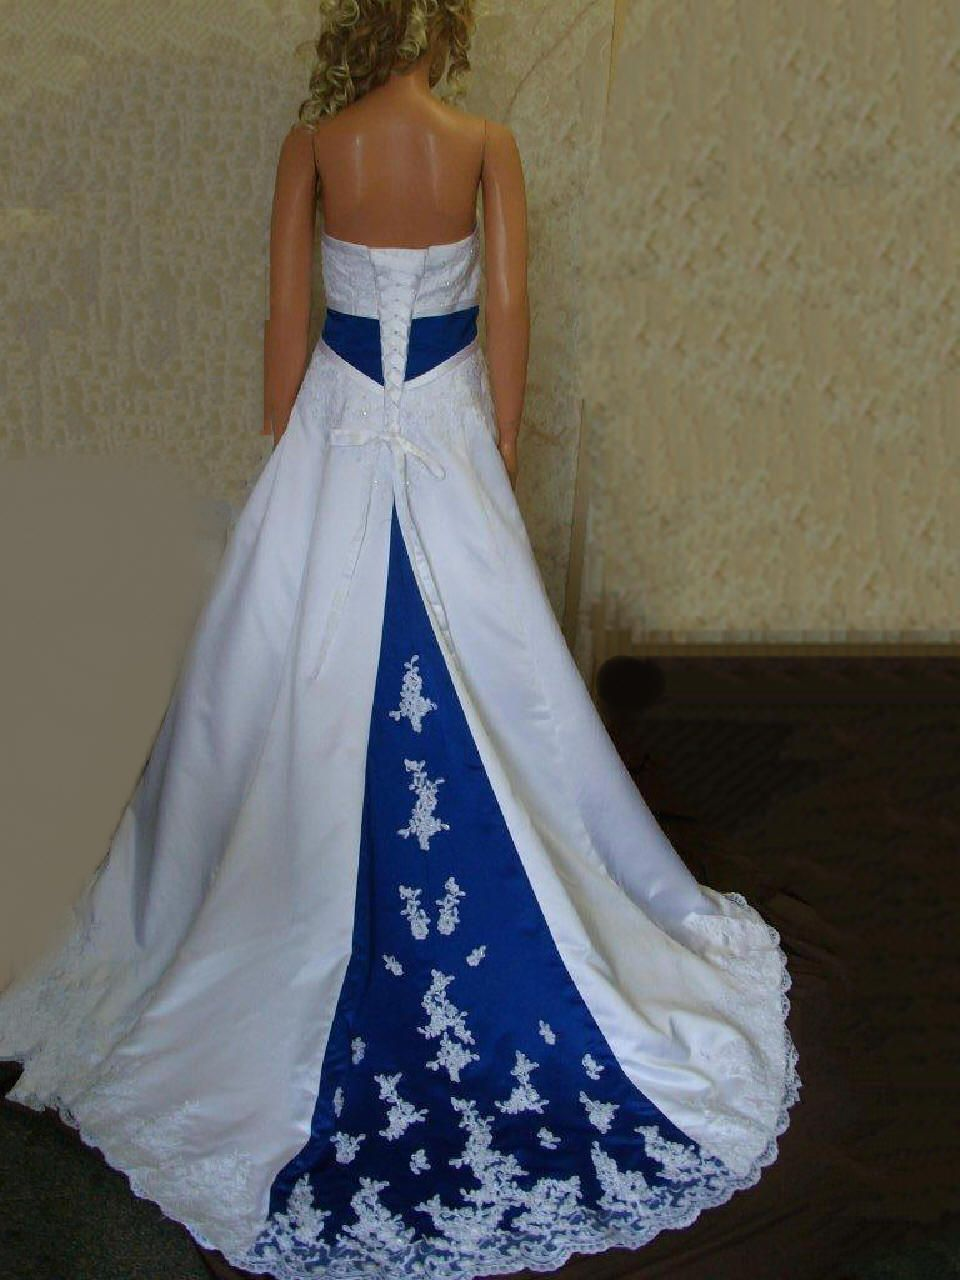 blue wedding dresses | ... wedding gown. Royal Blue Empireand ...